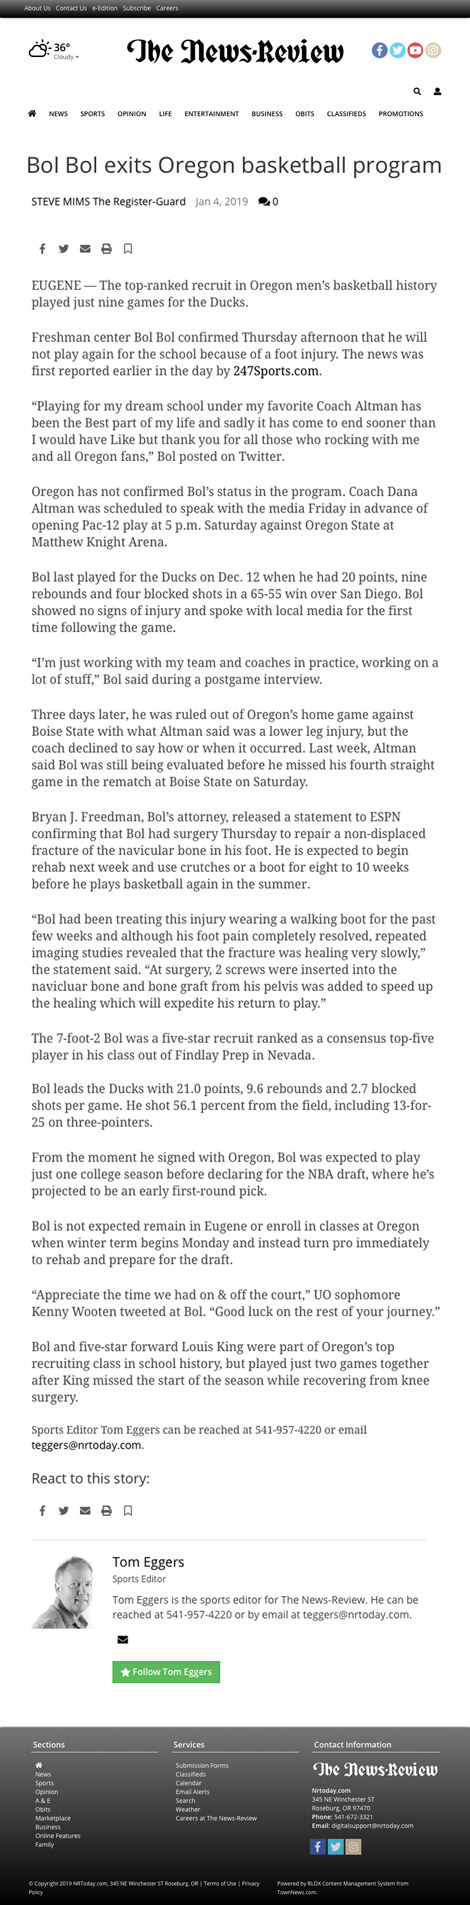 Bol Bol exits Oregon basketball program - article by NRtoday.com